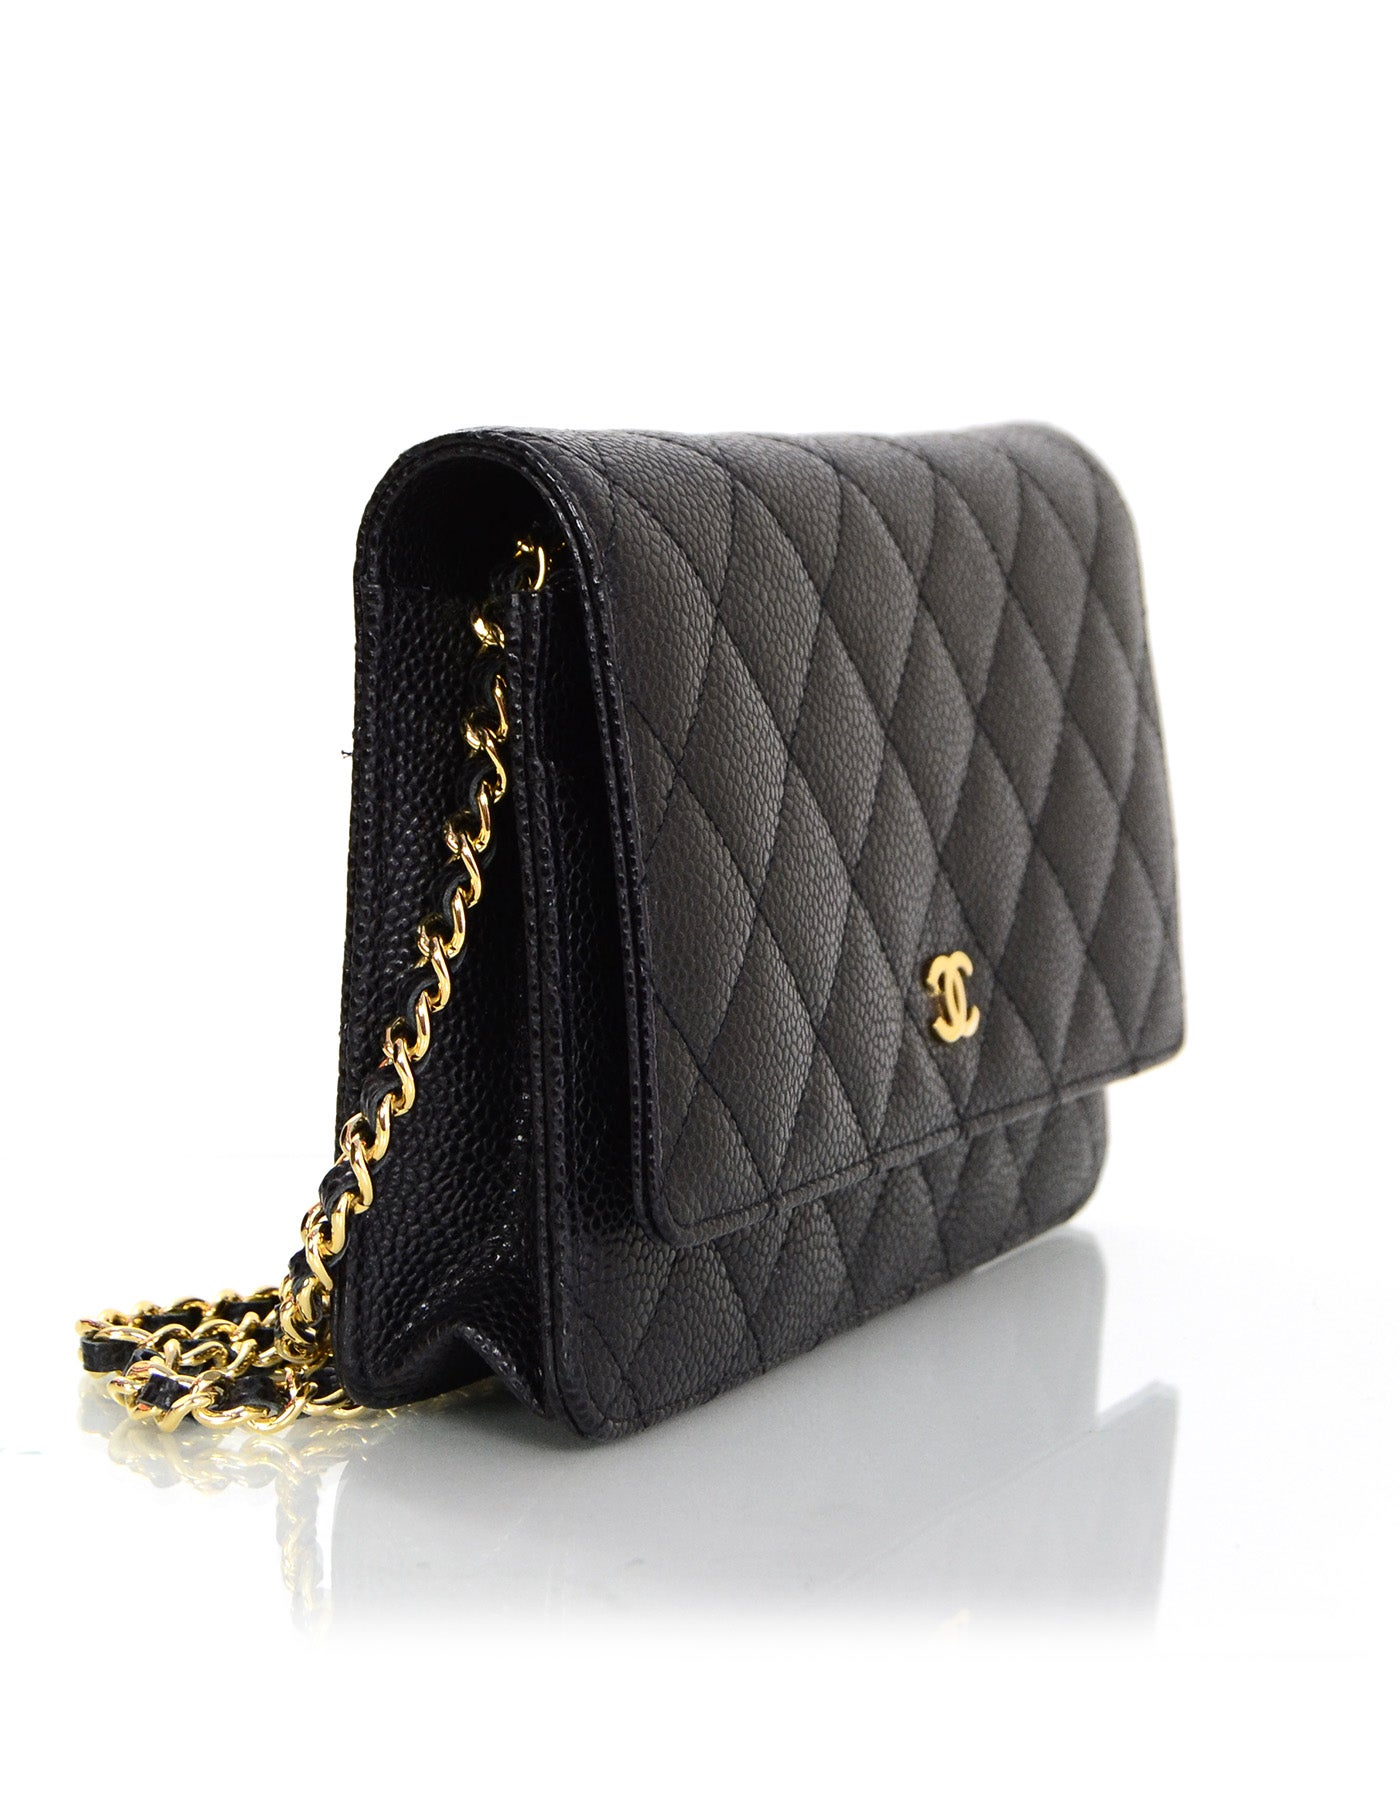 96ba5b8c1709 Chanel Black Caviar Leather Wallet On Chain WOC Crossbody Bag with Box For  Sale at 1stdibs